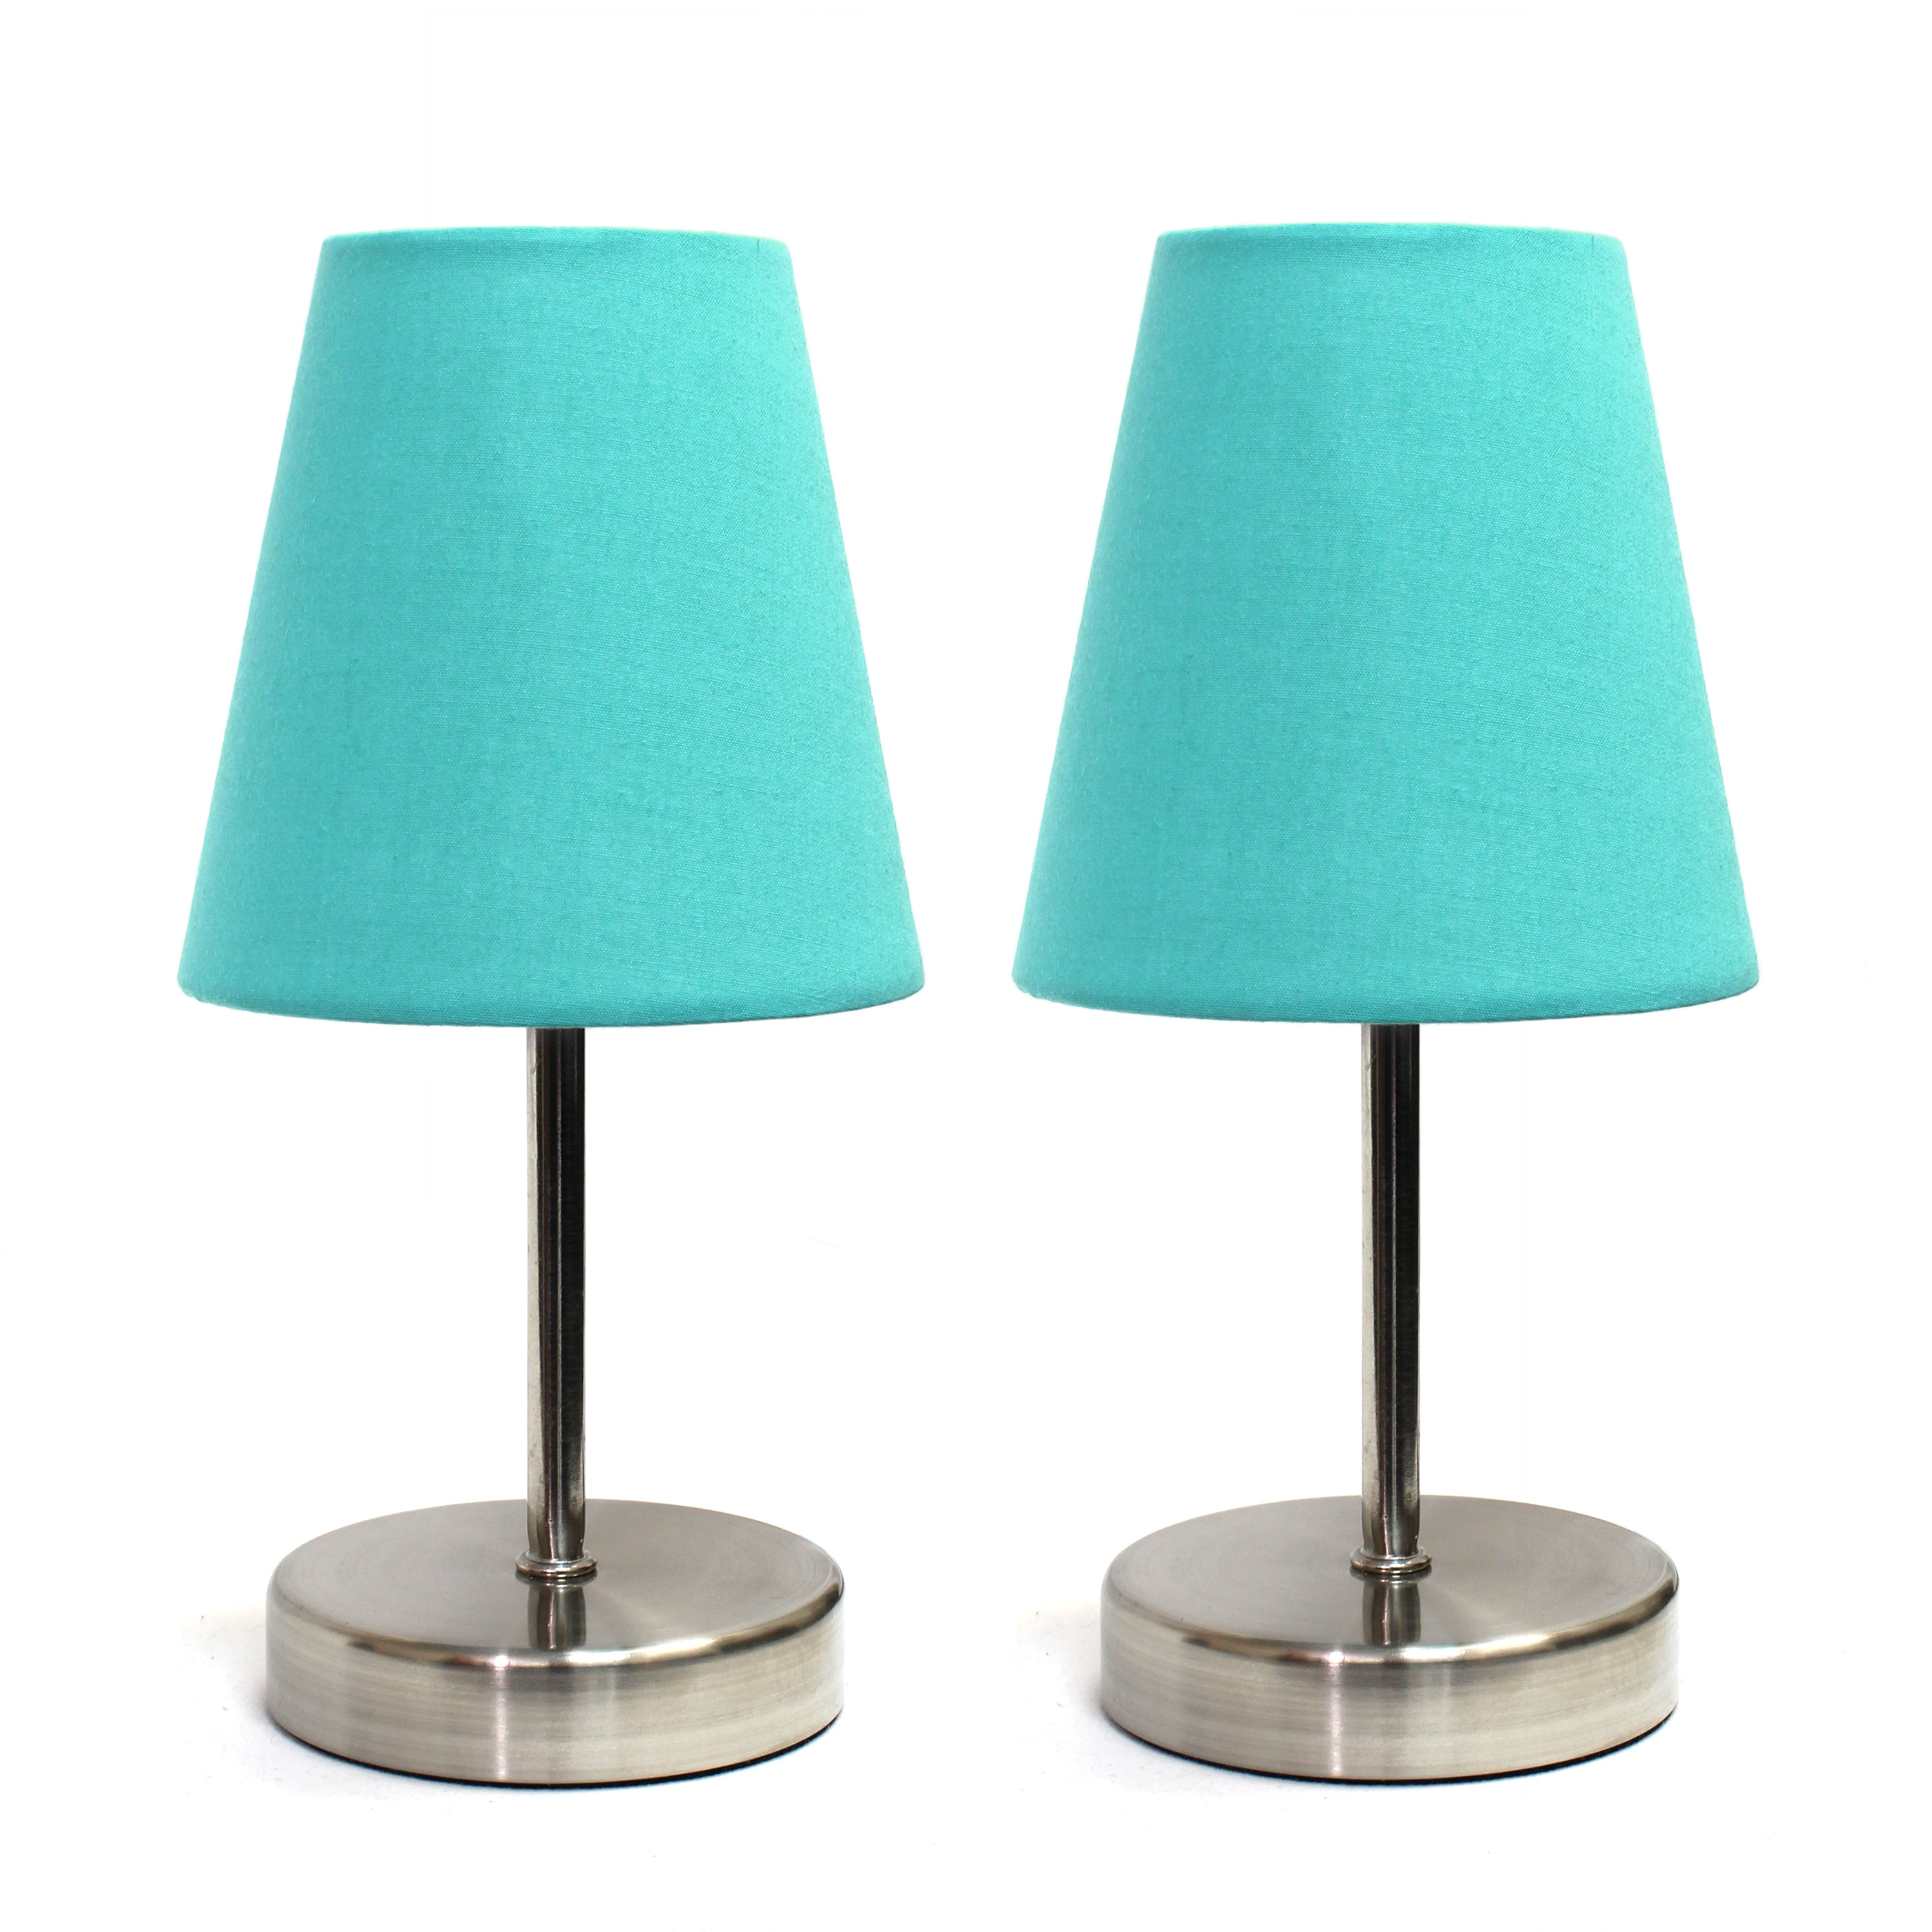 Clay Alder Home Hogback Sand Nickel Mini Basic Fabric Shade Table Lamps  (Set Of 2